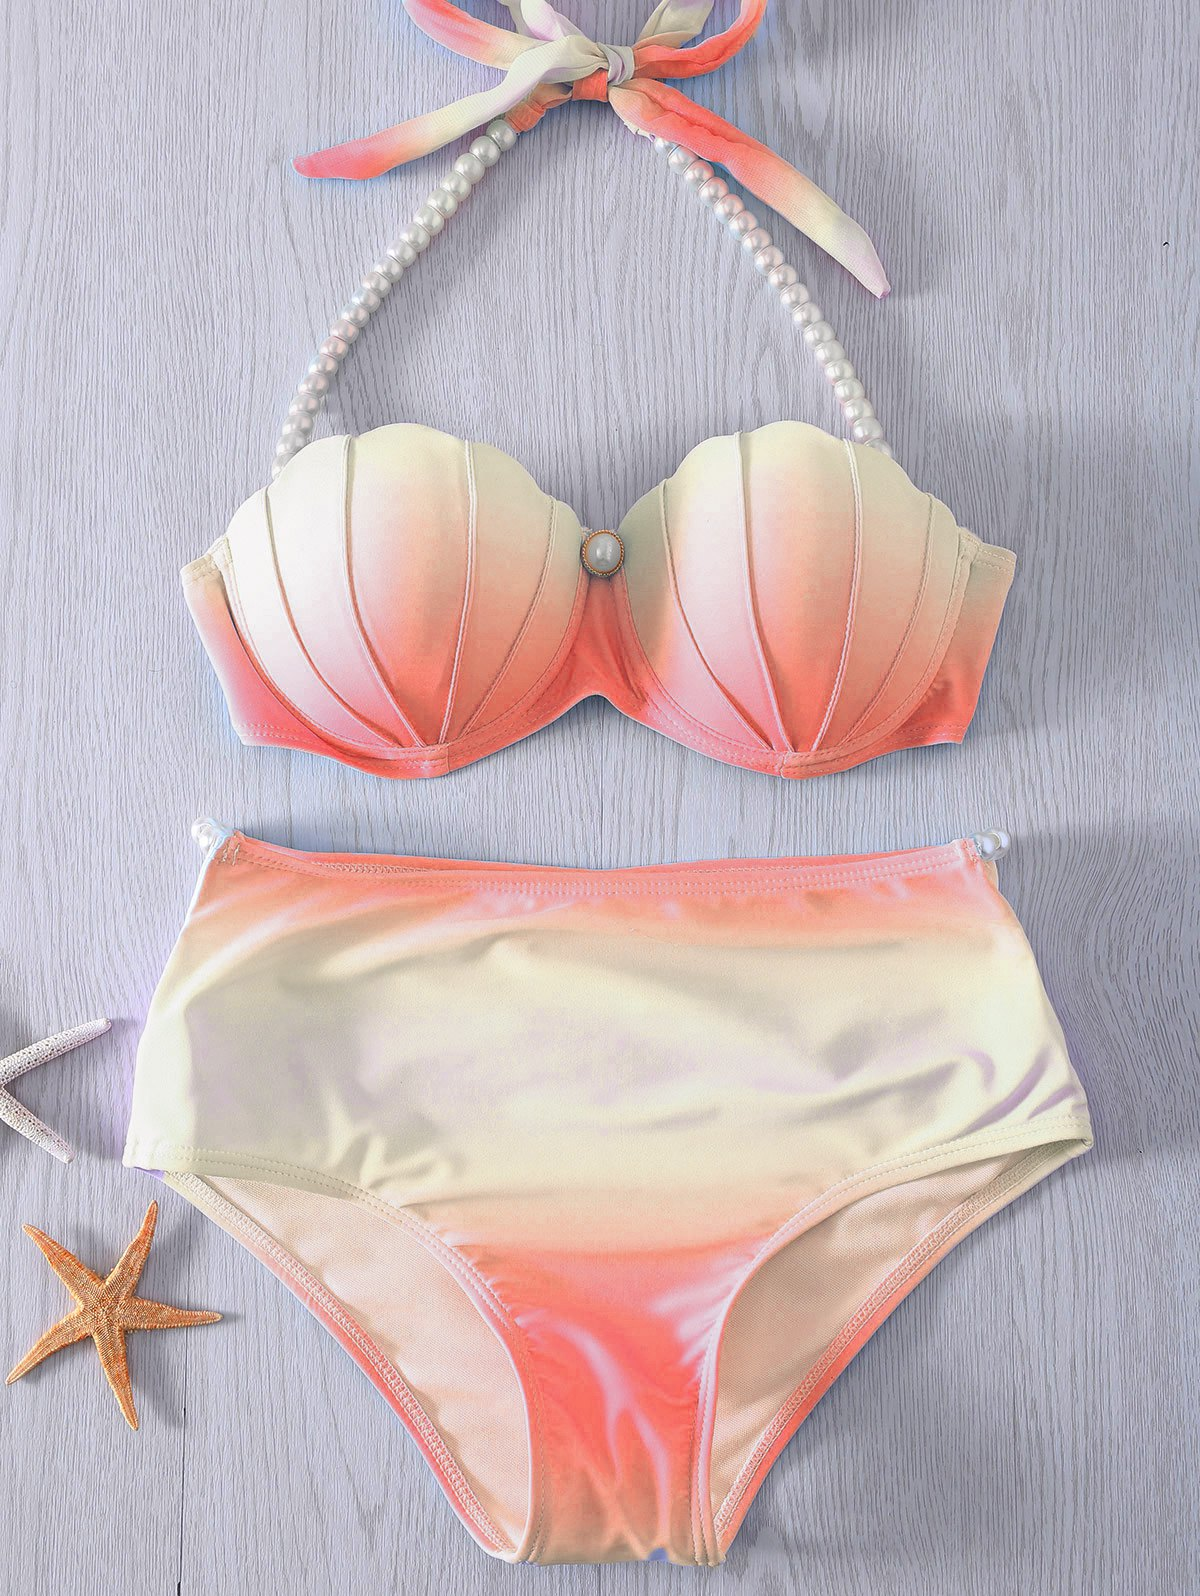 Halter Neck Tie Dye Pearl Embellished High Waist Bikini Set